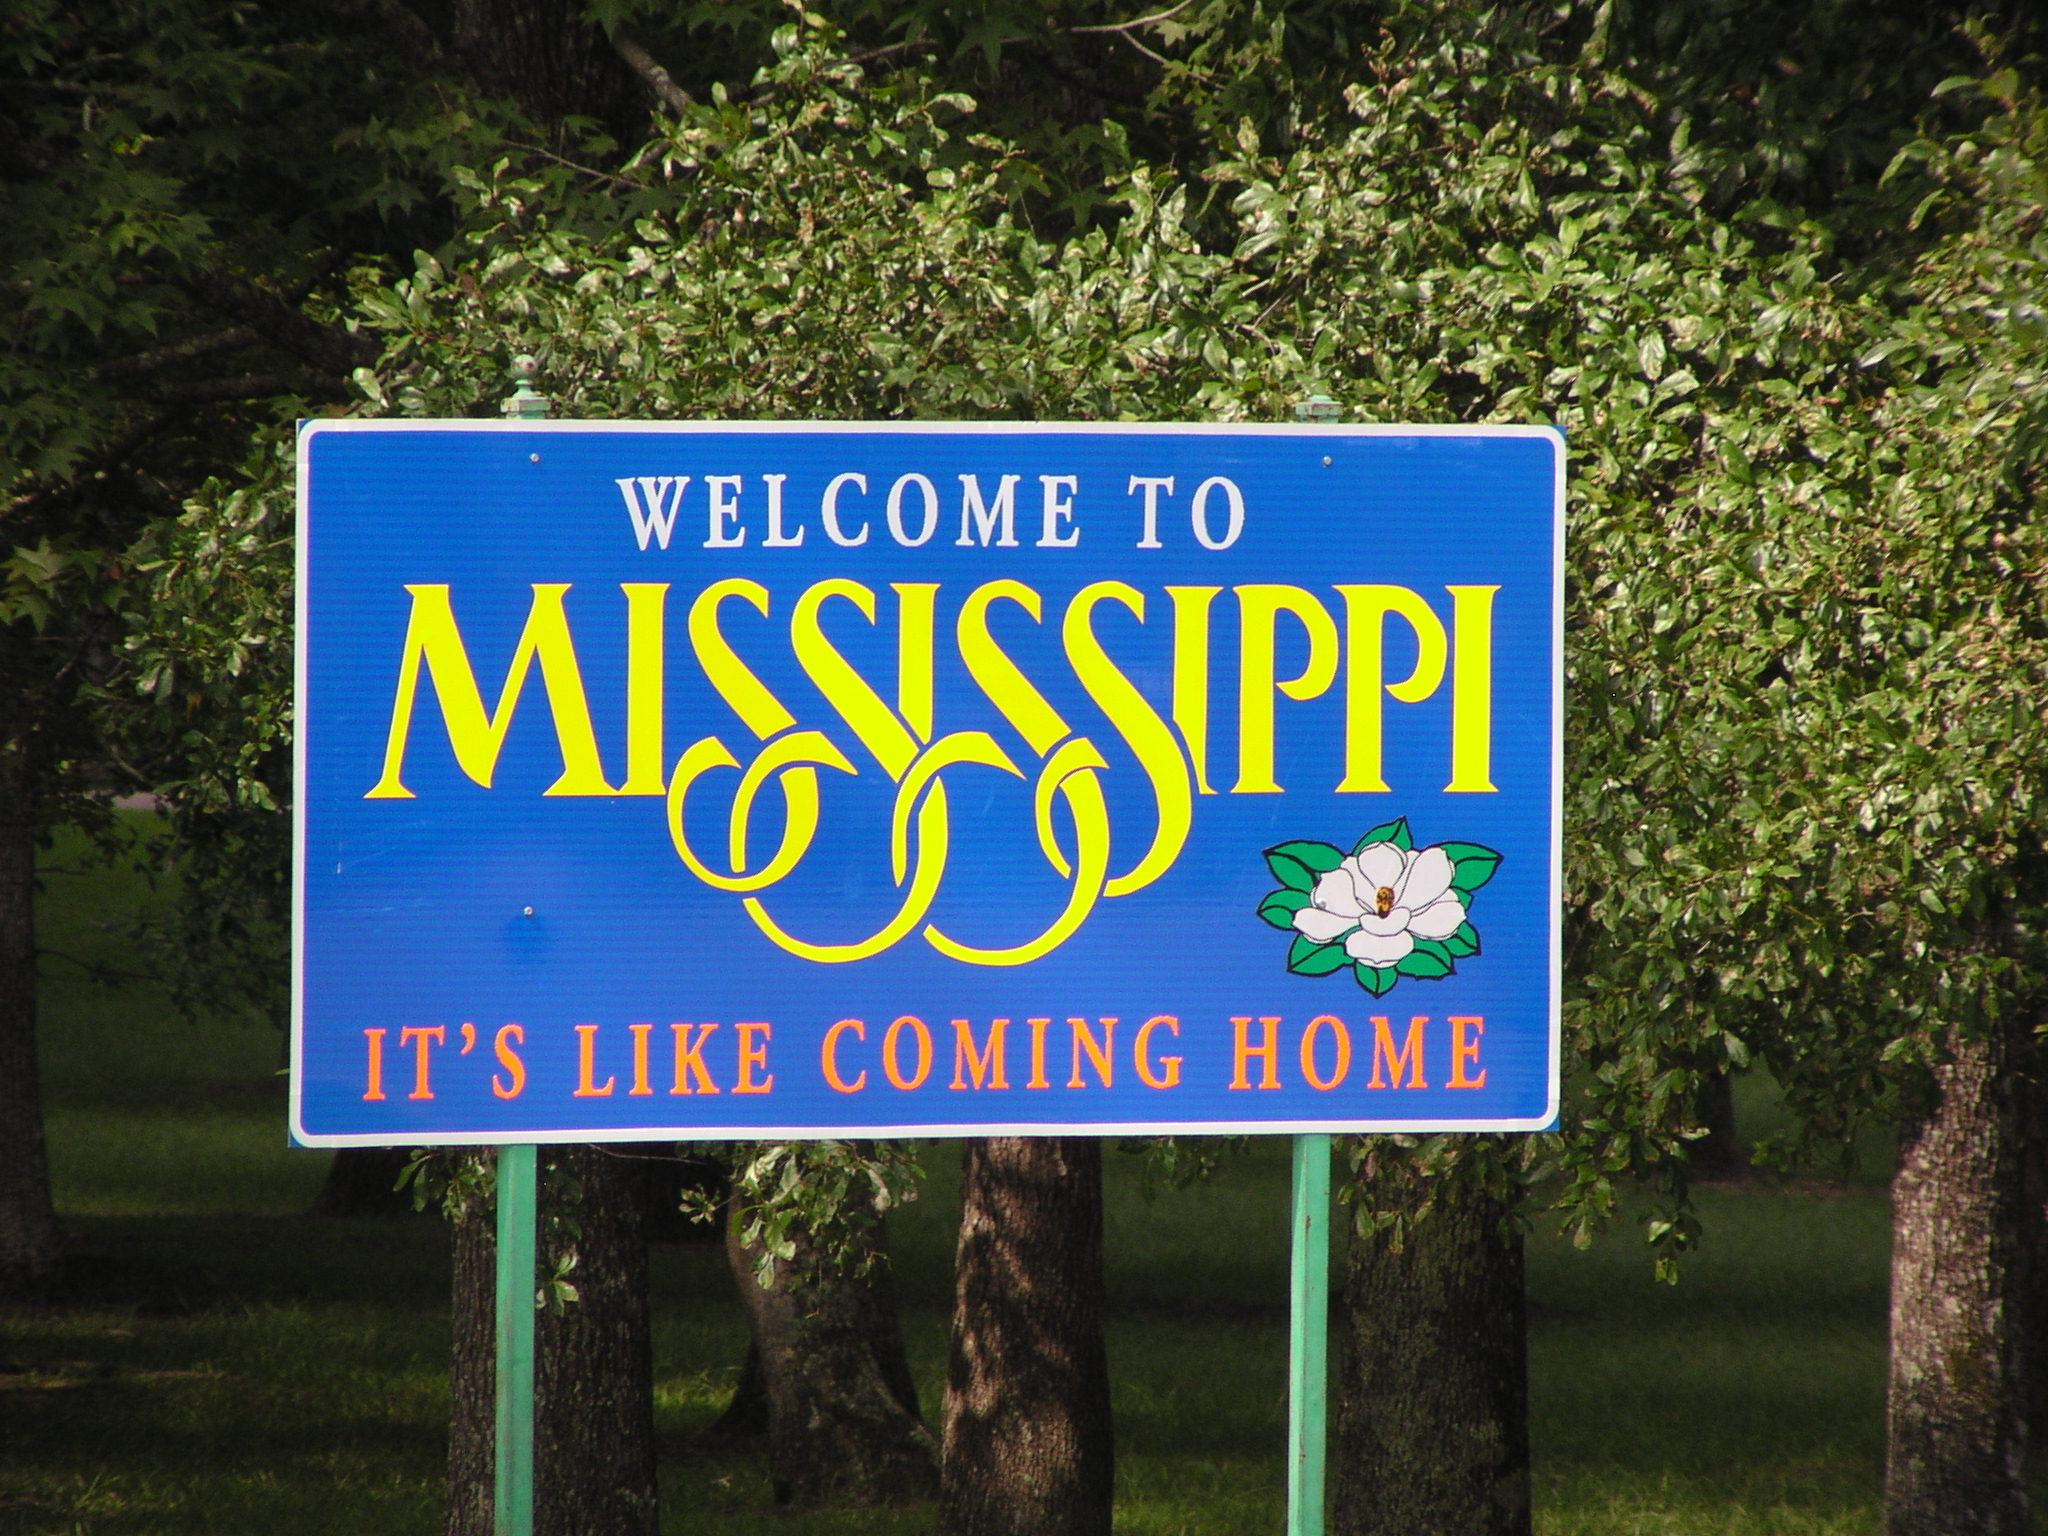 Another Mississippi welcome sign inside the rest area. [2048x1536]